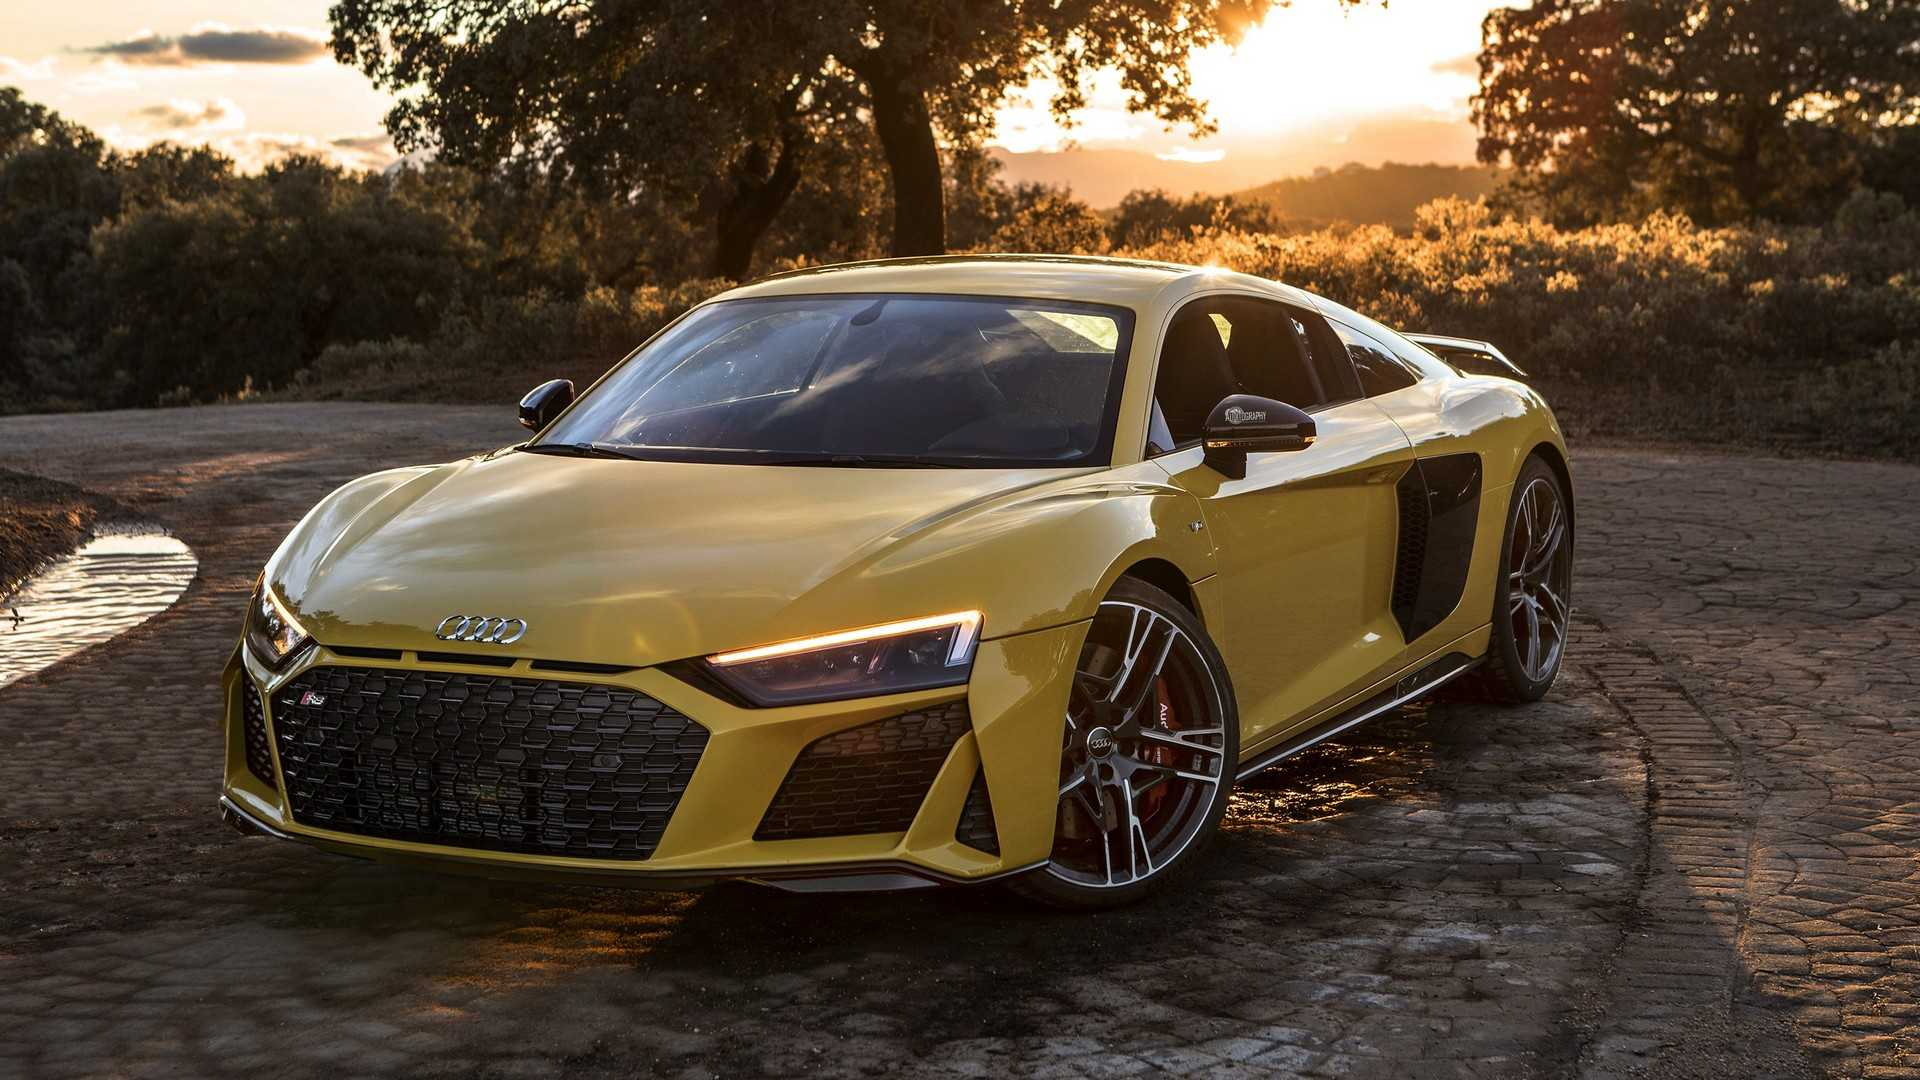 2019 Audi R8 V10 Performance Looks Brutal in Yellow